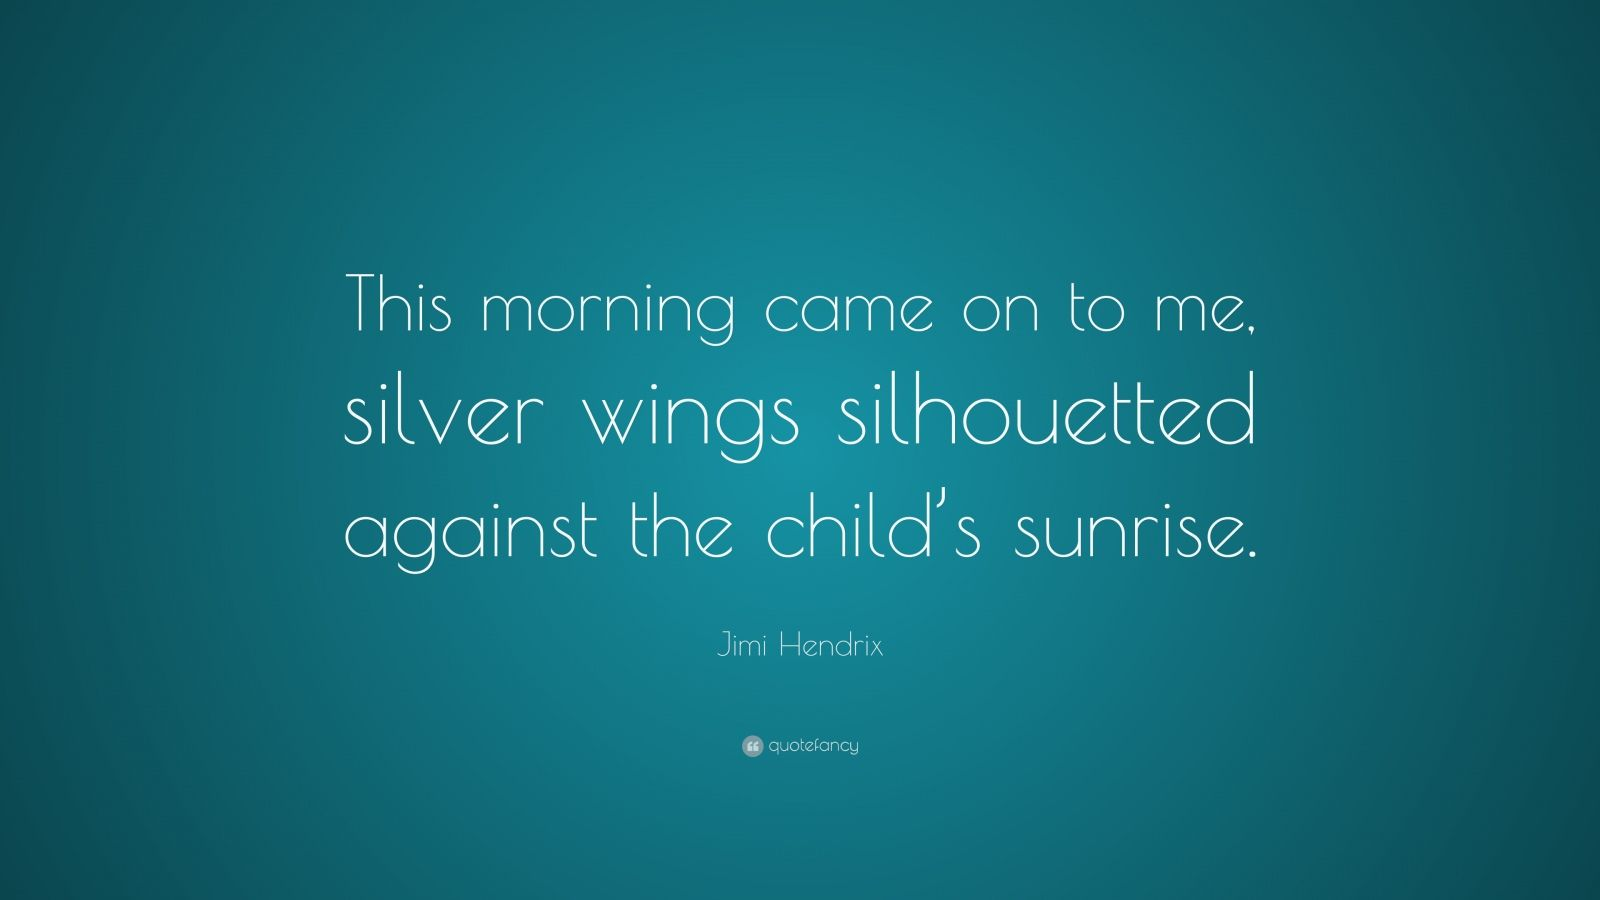 """Jimi Hendrix Quote: """"This morning came on to me, silver wings silhouetted against the child's sunrise."""""""